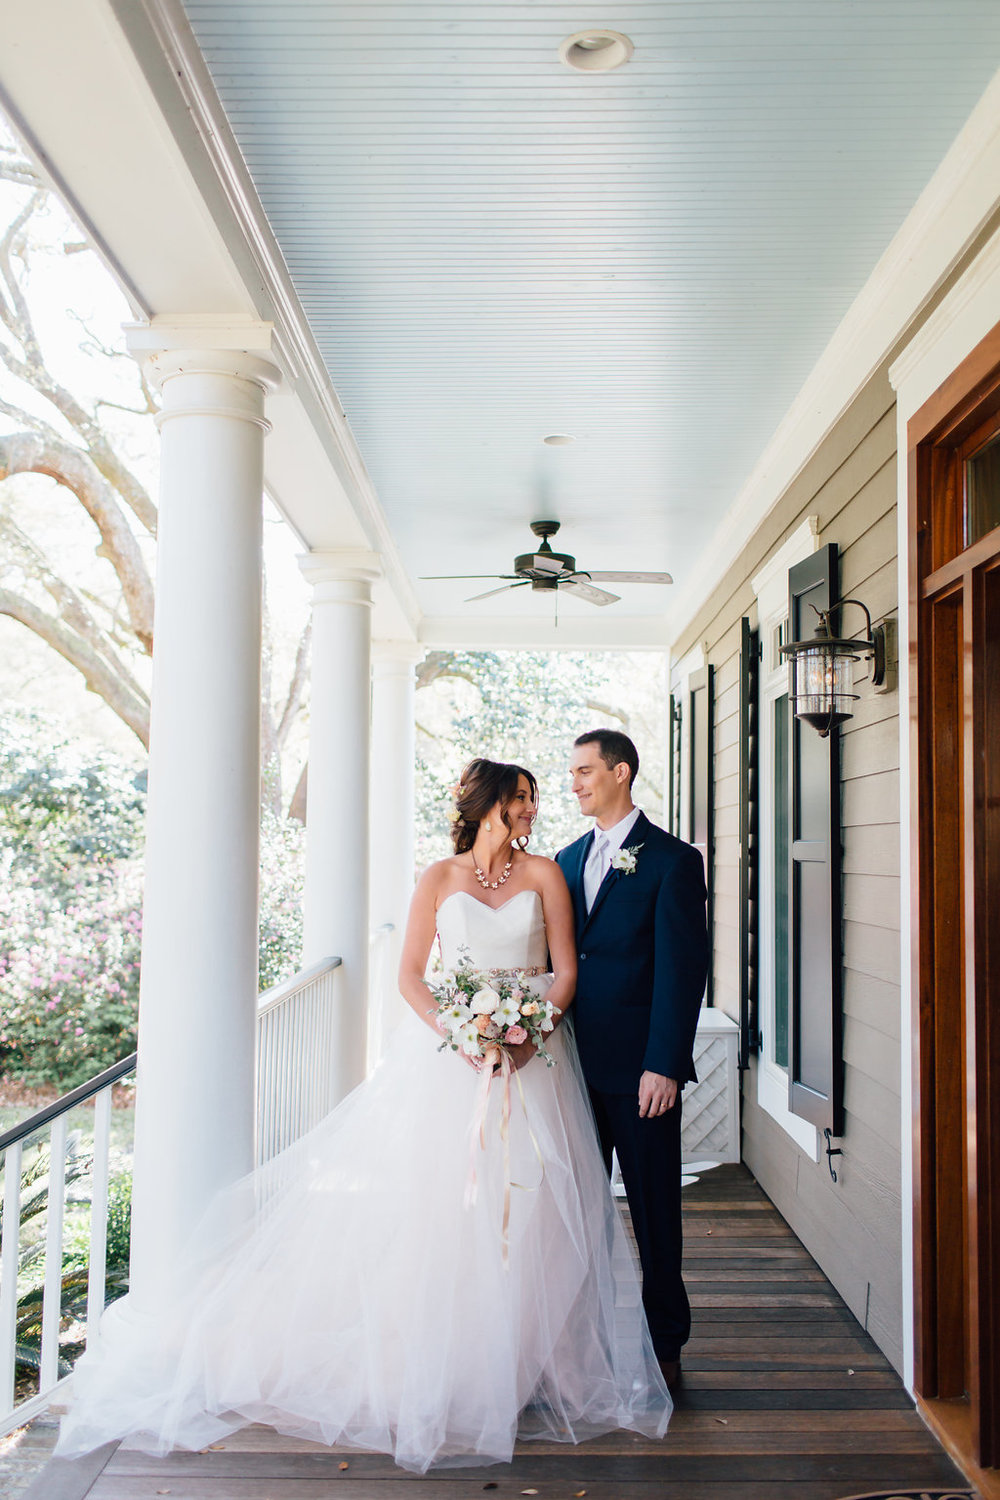 hannah-lane-photography-southern-weddings-blog-charleson-wedding-charleston-styled-shoot-ivory-and-beau-bridal-boutique-blush-by-hayley-paige-candi-blush-tulle-wedding-dress-savannah-bridal-boutique-savannah-wedding-dresses-rosegold-sash-24.jpg